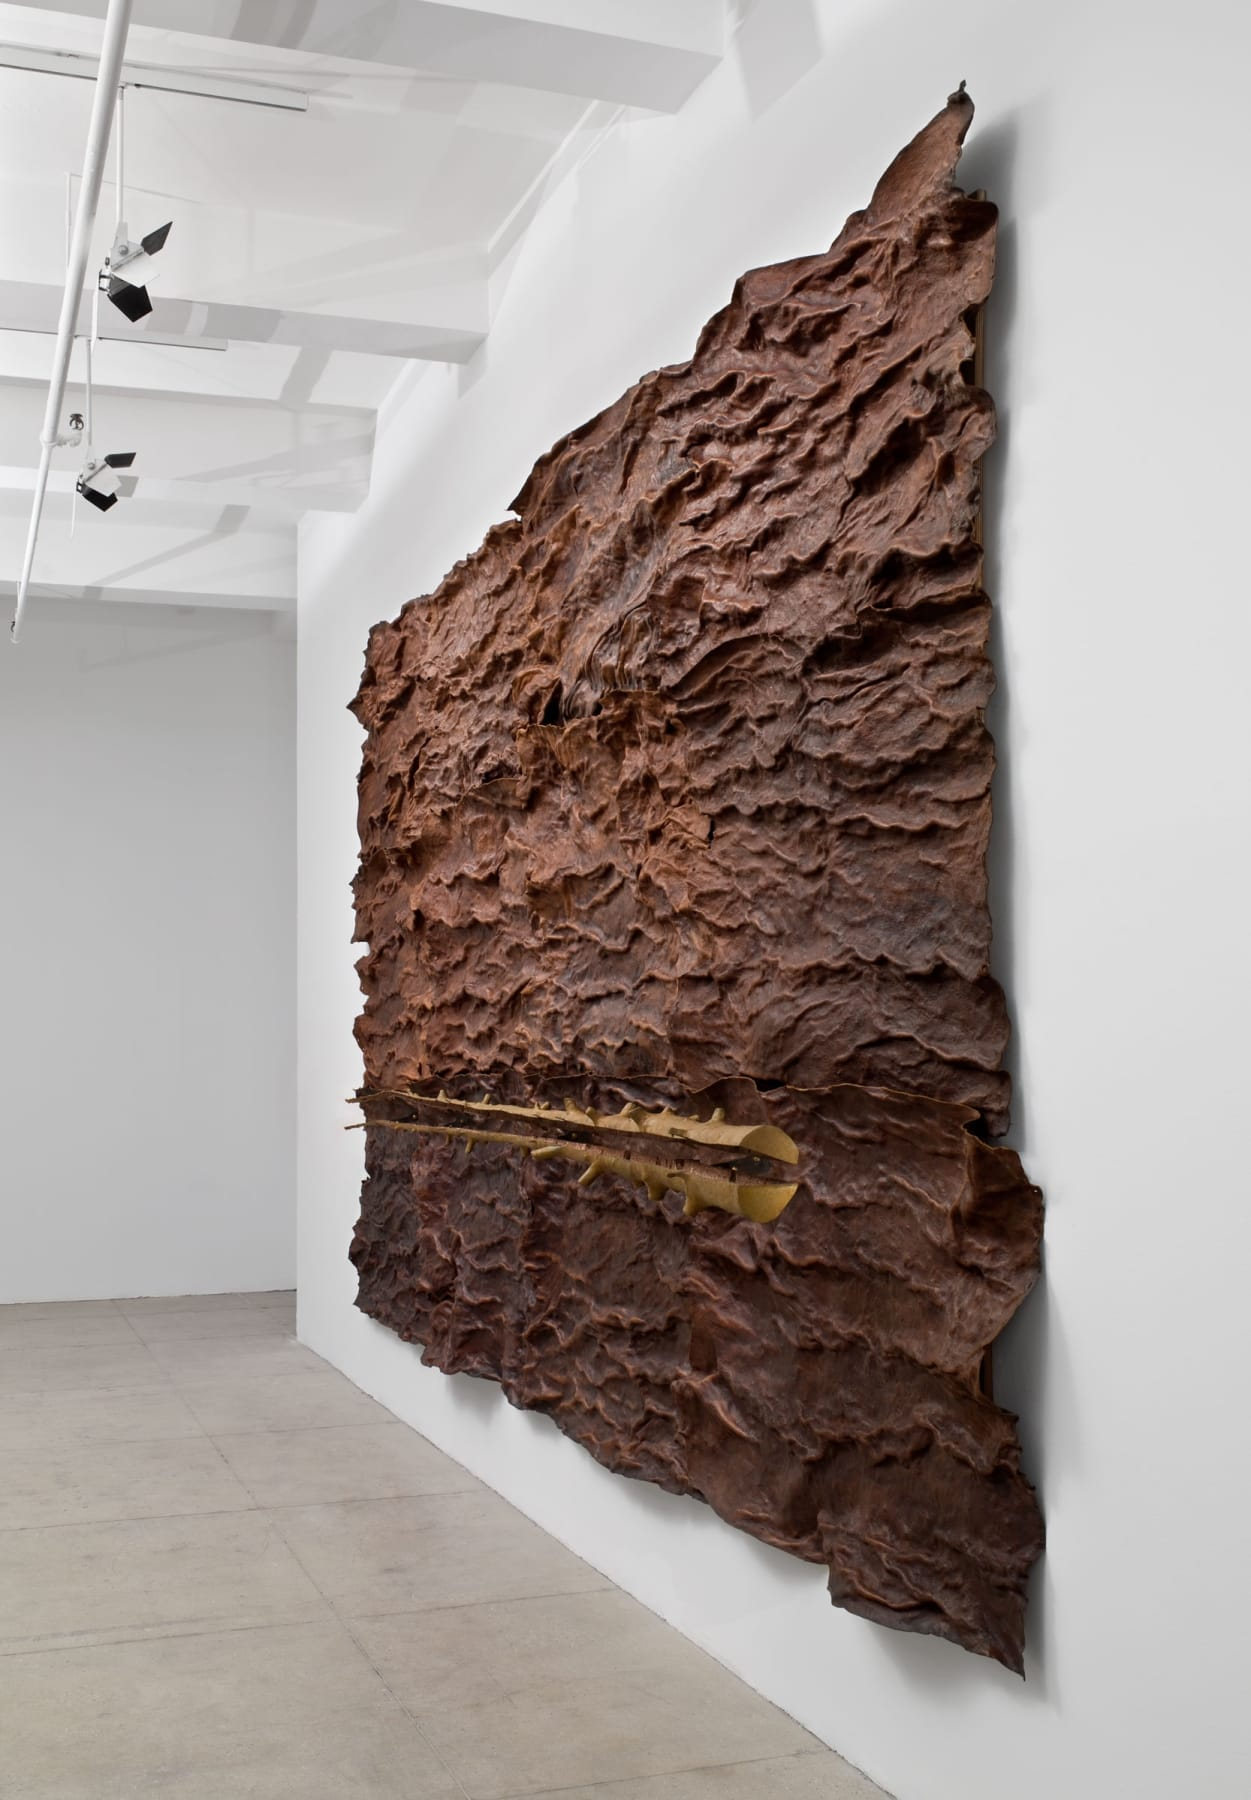 A large bark-like sculpture with a tree trunk running horizontally in front of it hangs on a white wall.